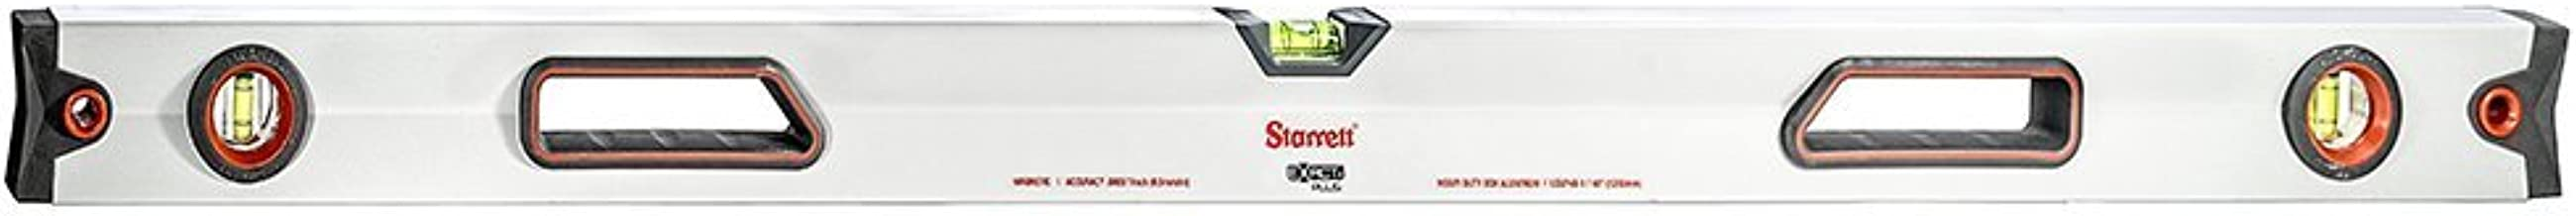 Starrett Exact Plus KLBXP48-1-N Aluminum Box Beam Magnetic Level with 3 Block Vials, 48